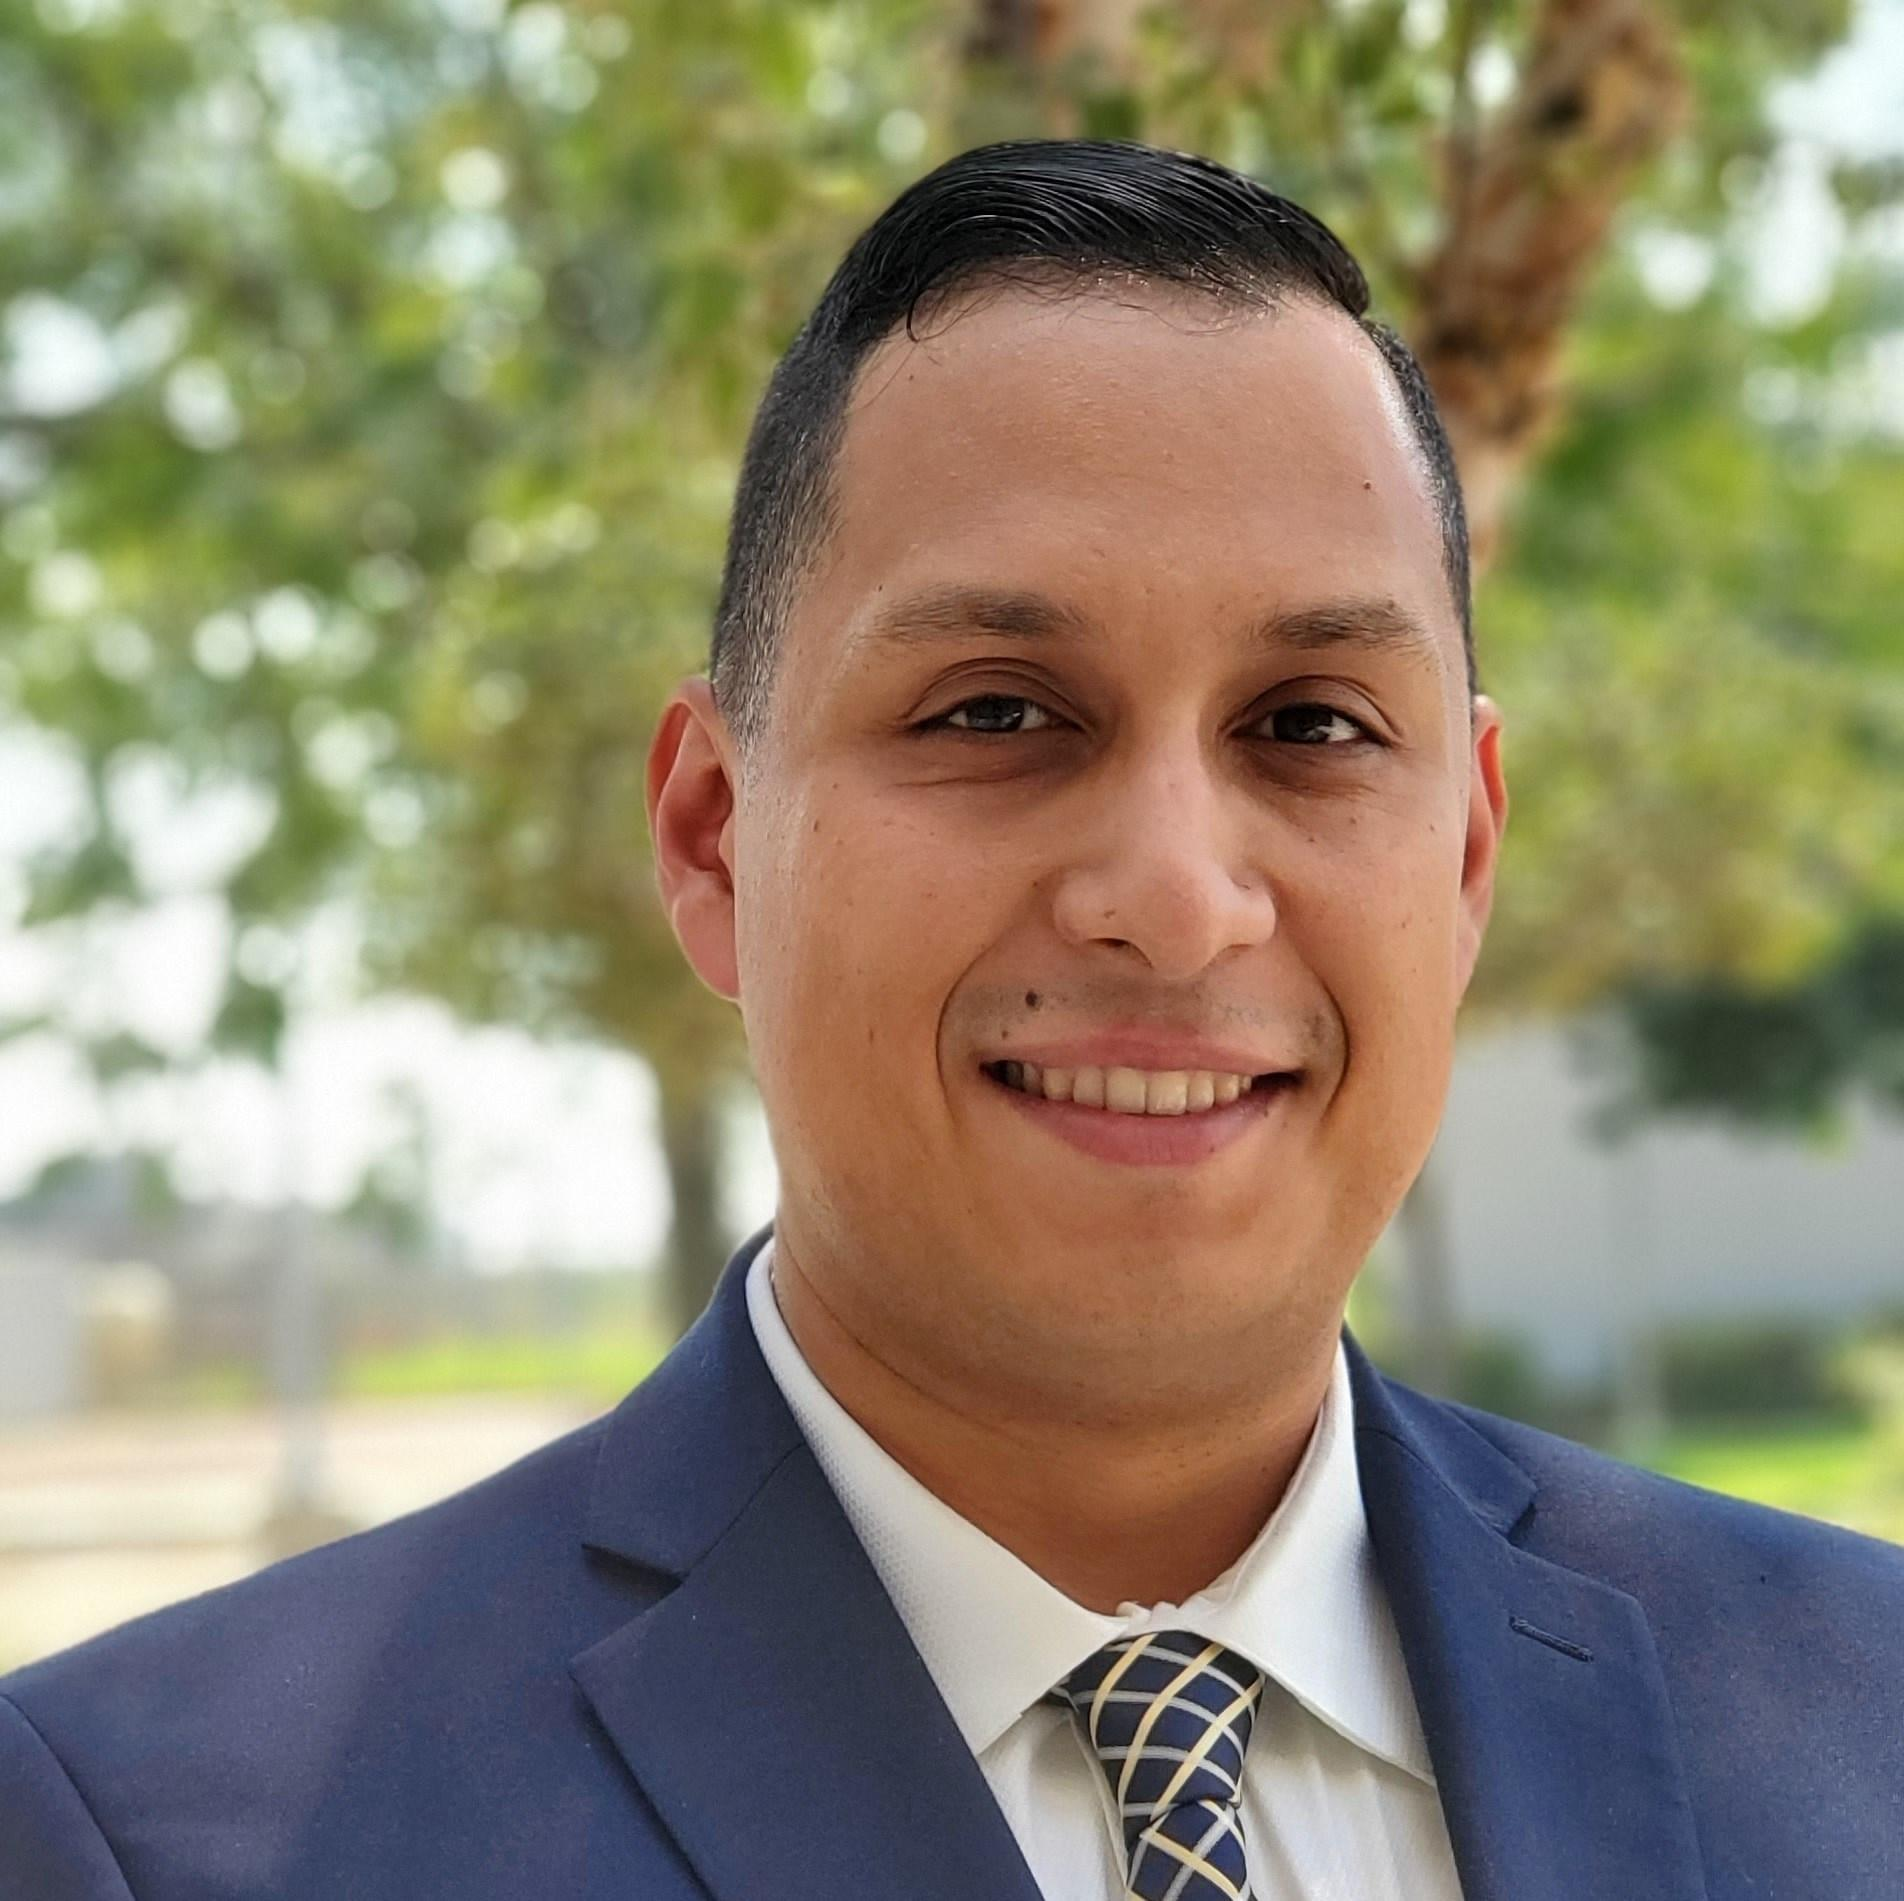 JORGE CRUZ Financial Professional & Insurance Agent